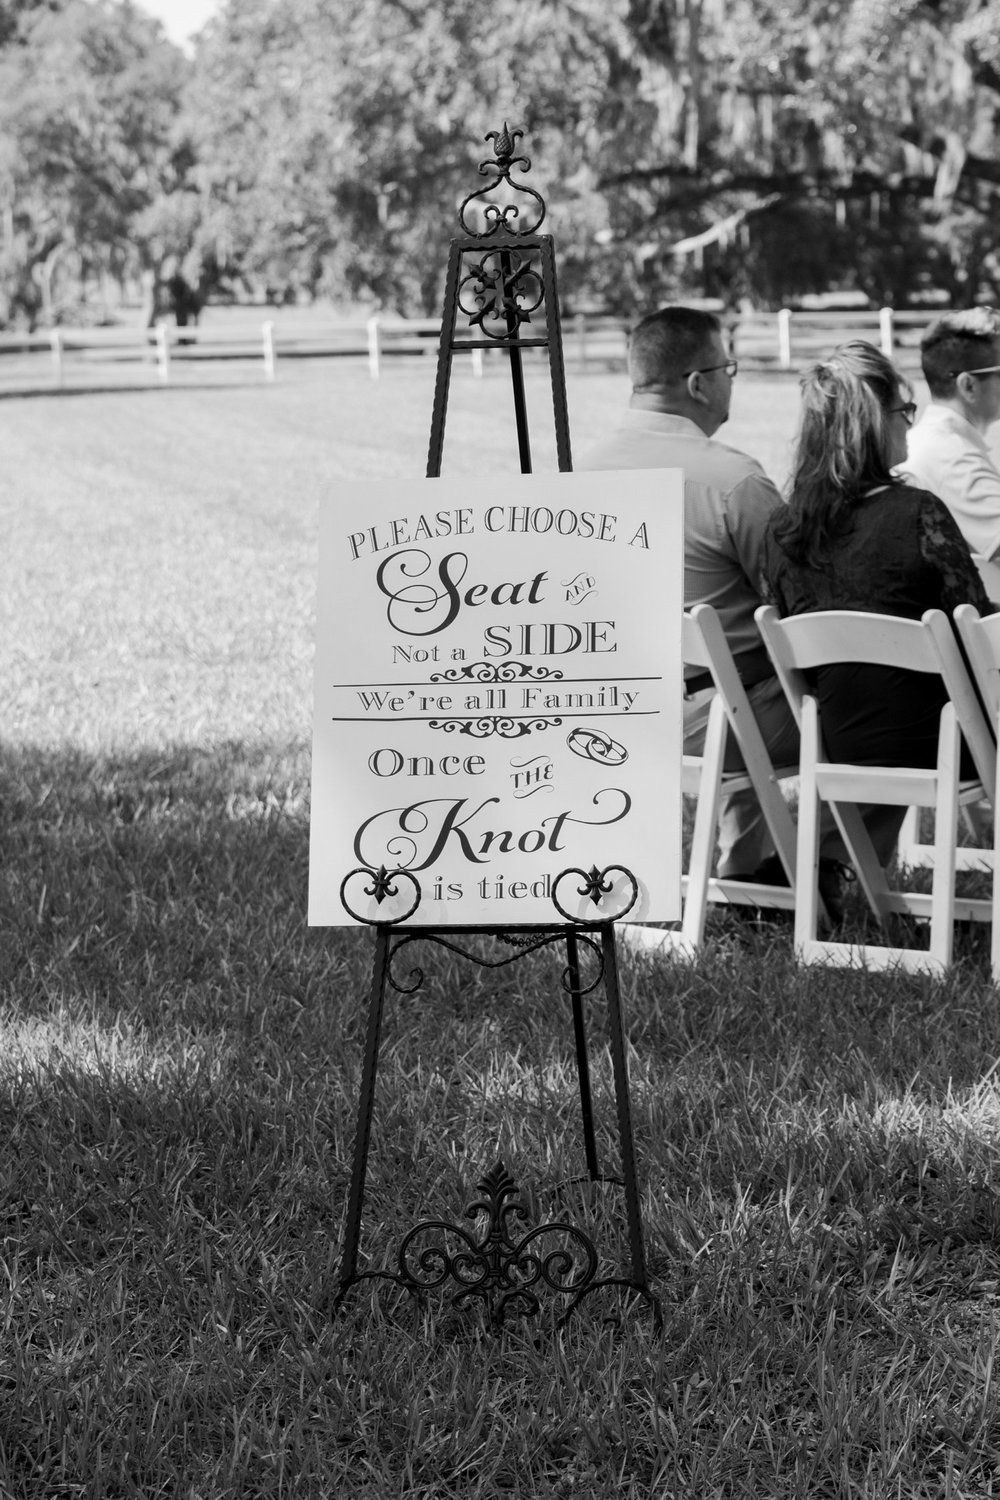 Stonebridge-Weddings-and-Events-at-The-Lange-Farm-_2.jpg